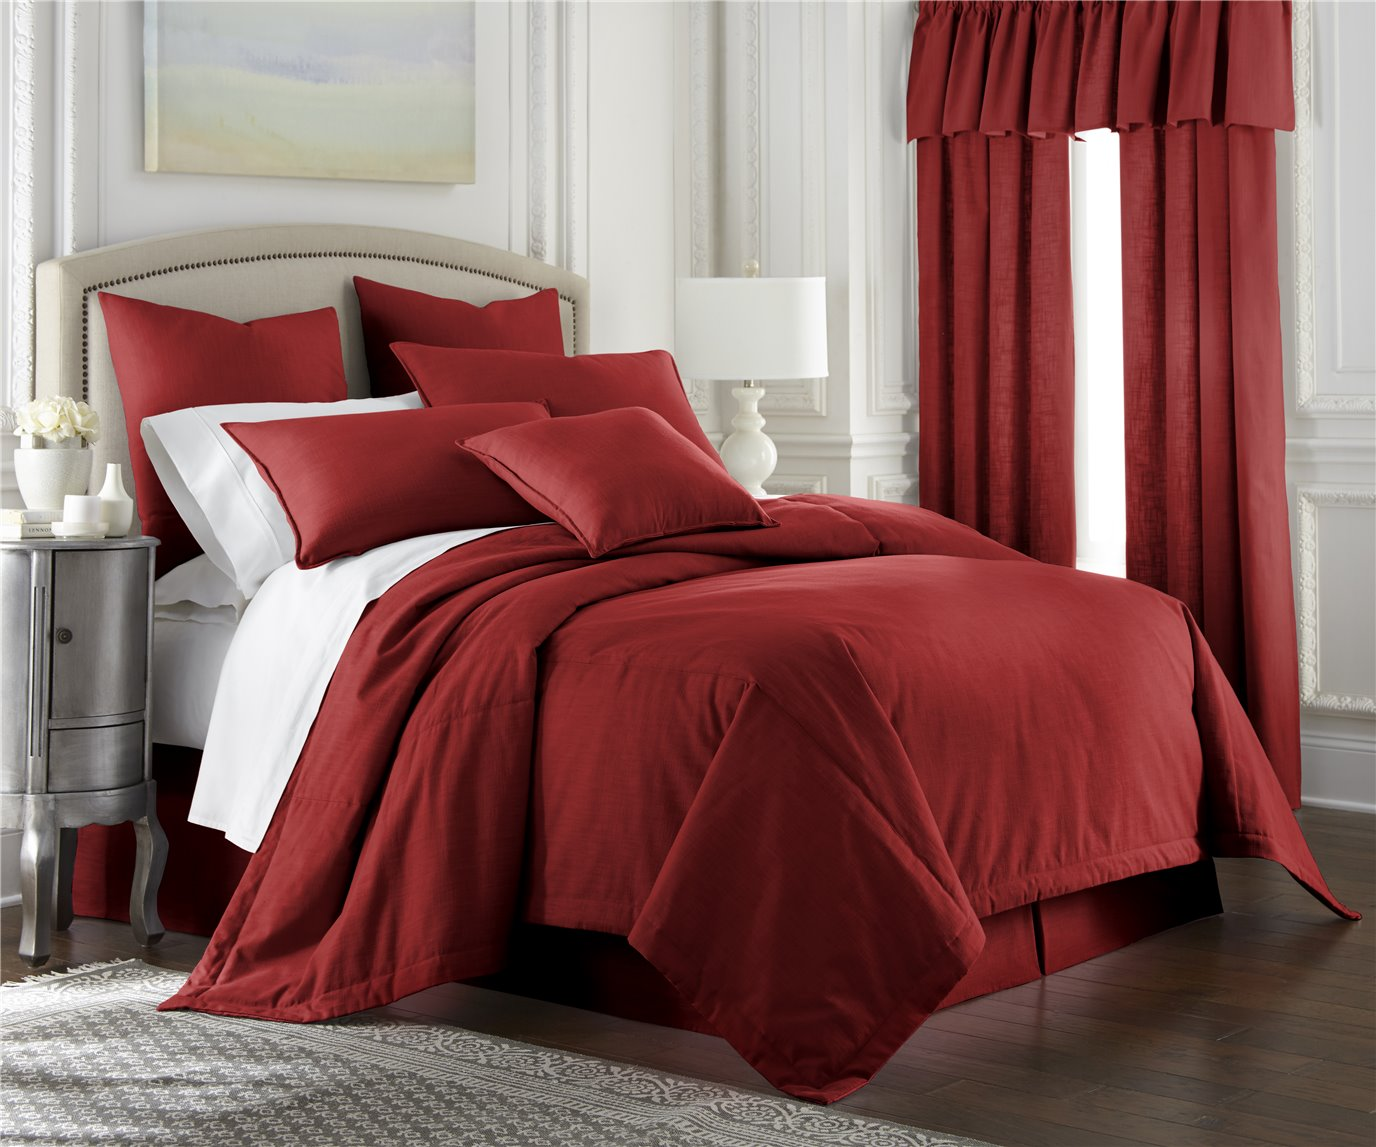 Cambric Red Comforter Twin